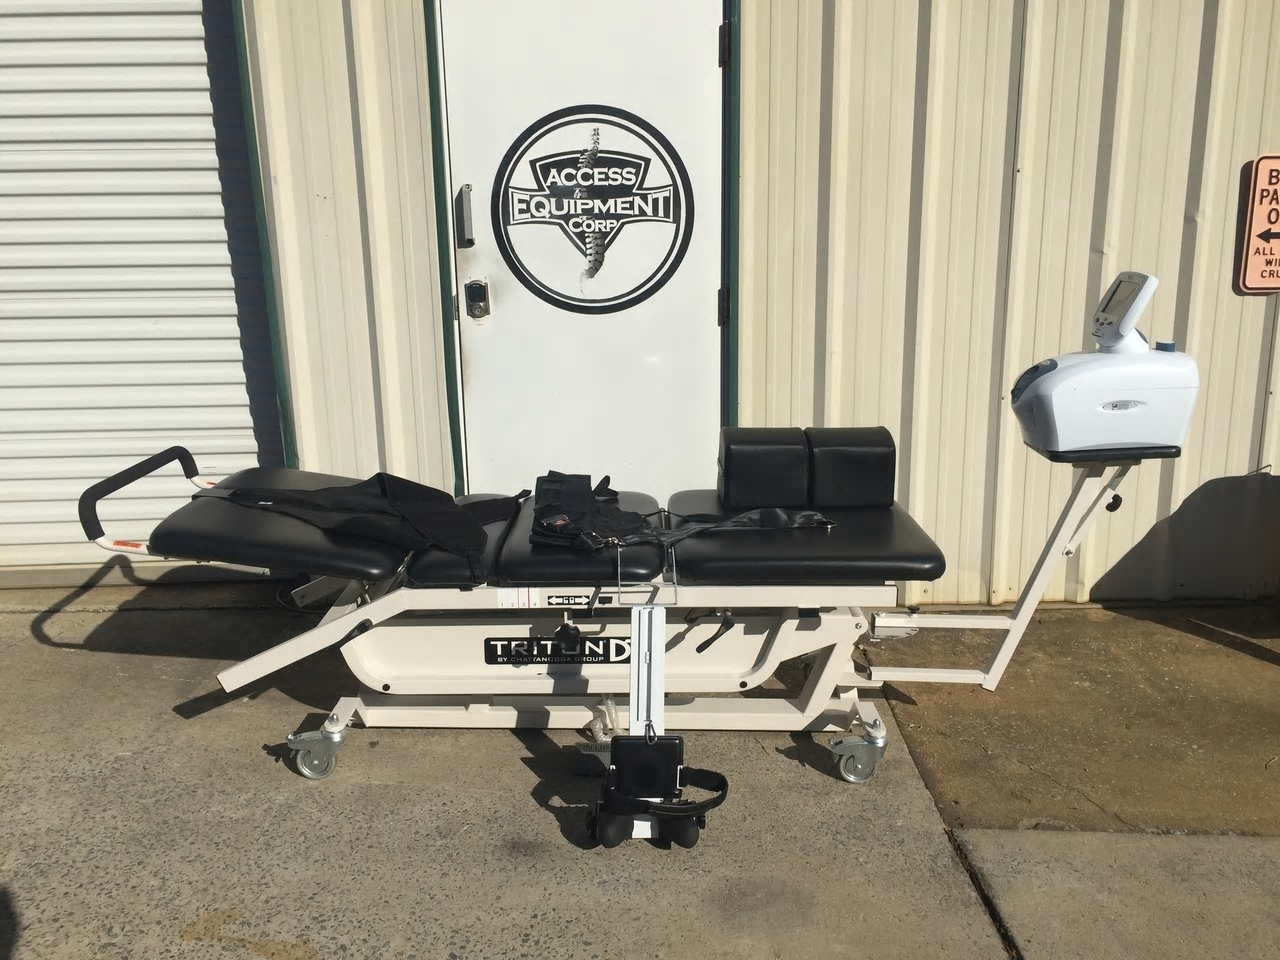 Used Chattanooga Dts 550 Decompression table